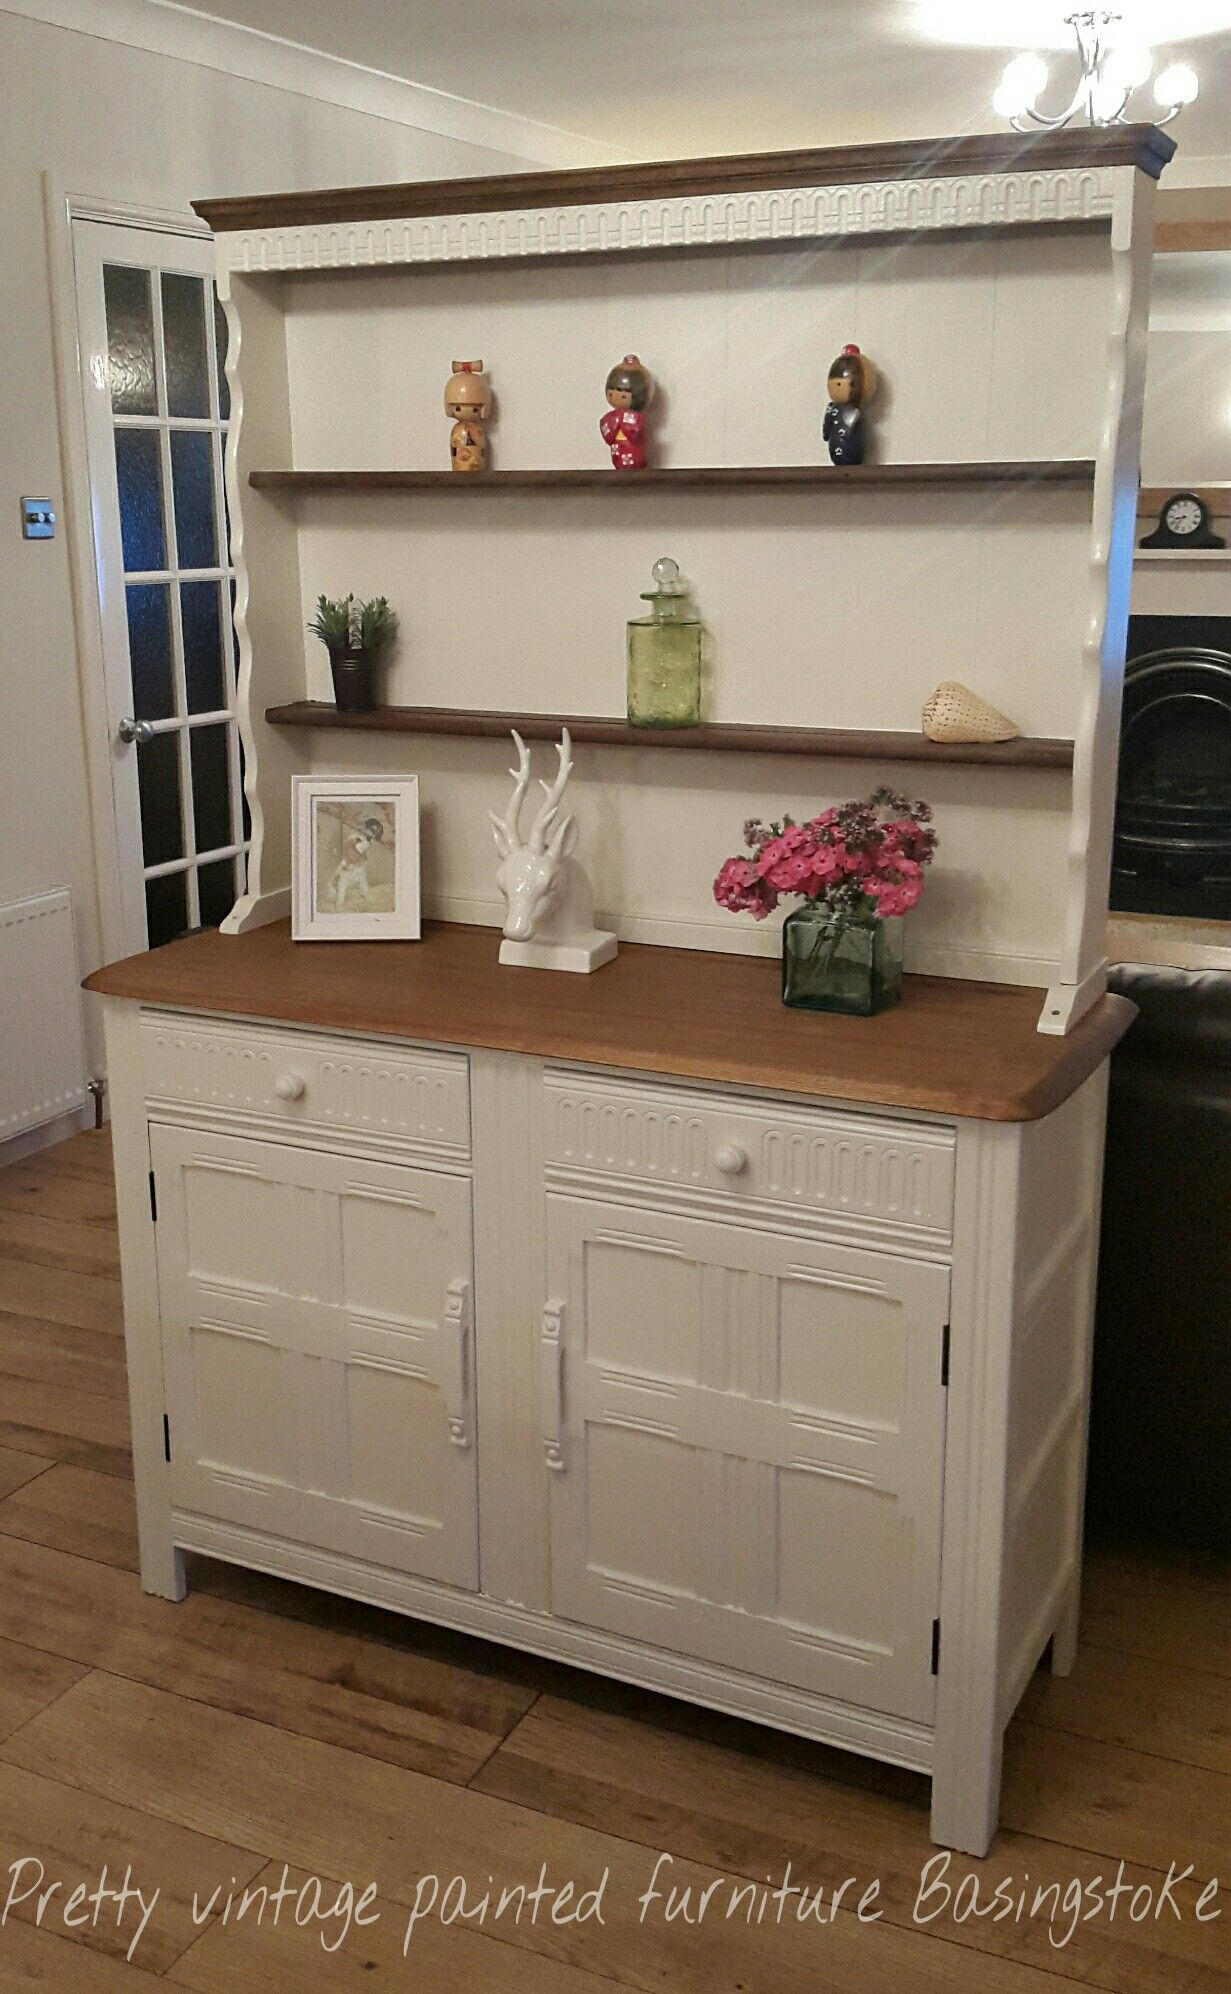 Vintage priory painted welsh dresser in Farrow